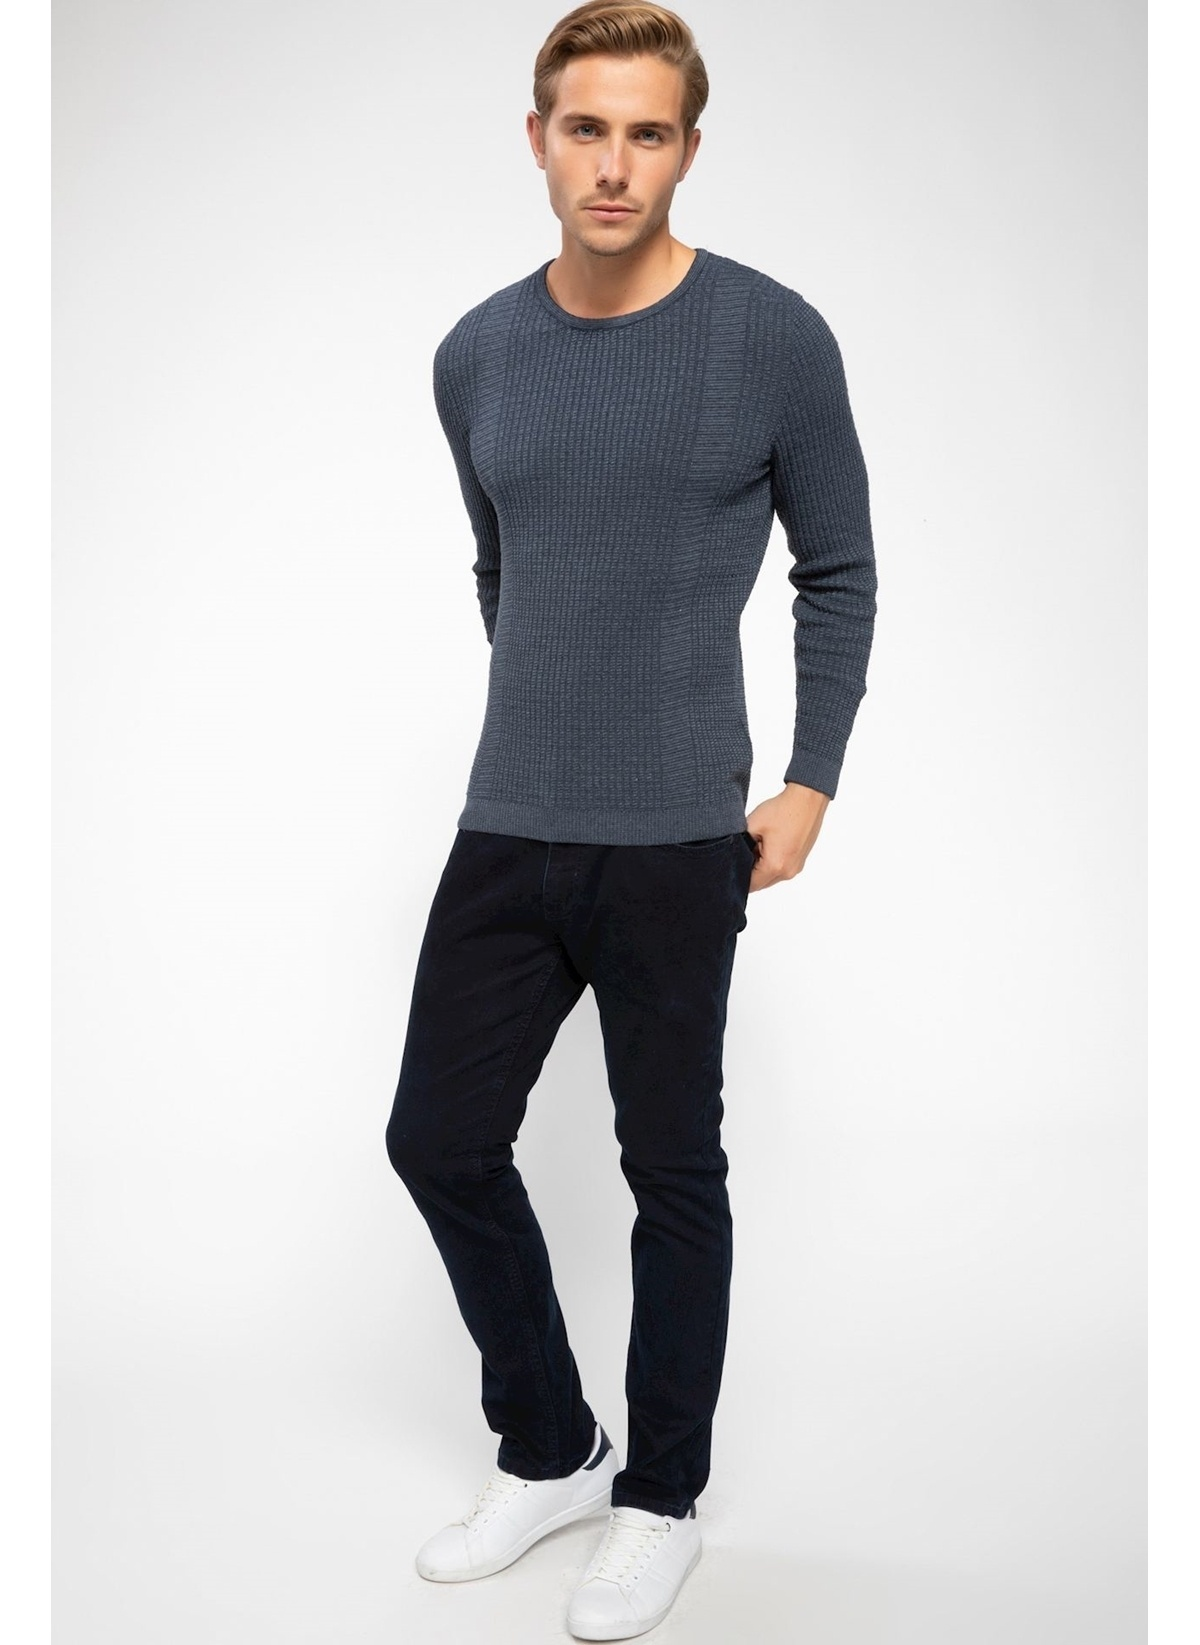 Defacto Sergio Regular Fit Denim Pantolon J7746az18auın196 Jean Pantolon – 59.99 TL